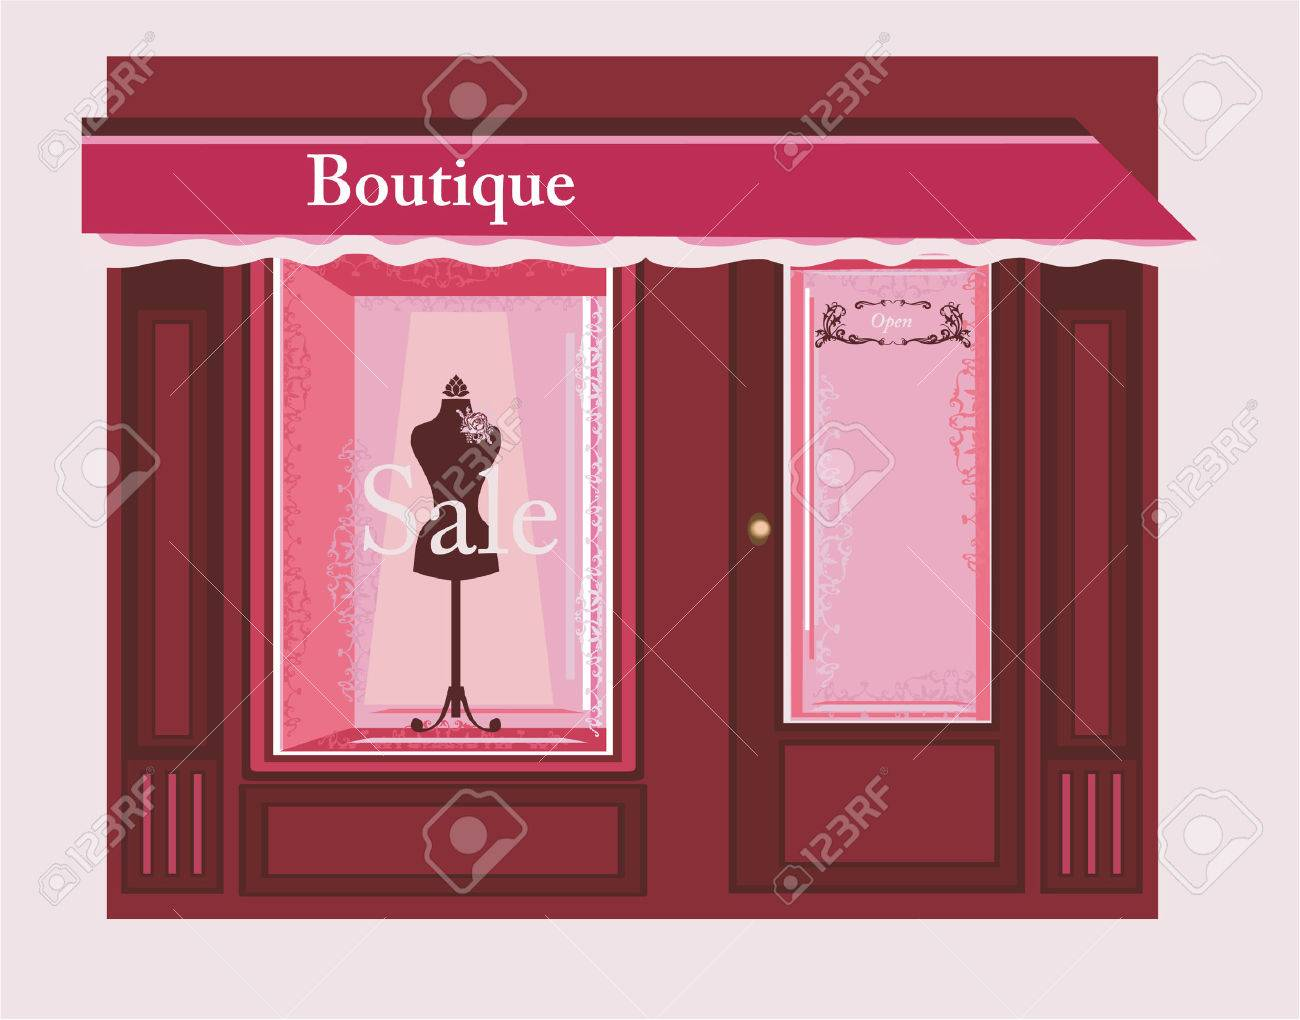 Chic Boutique Stock Vector - 4017236